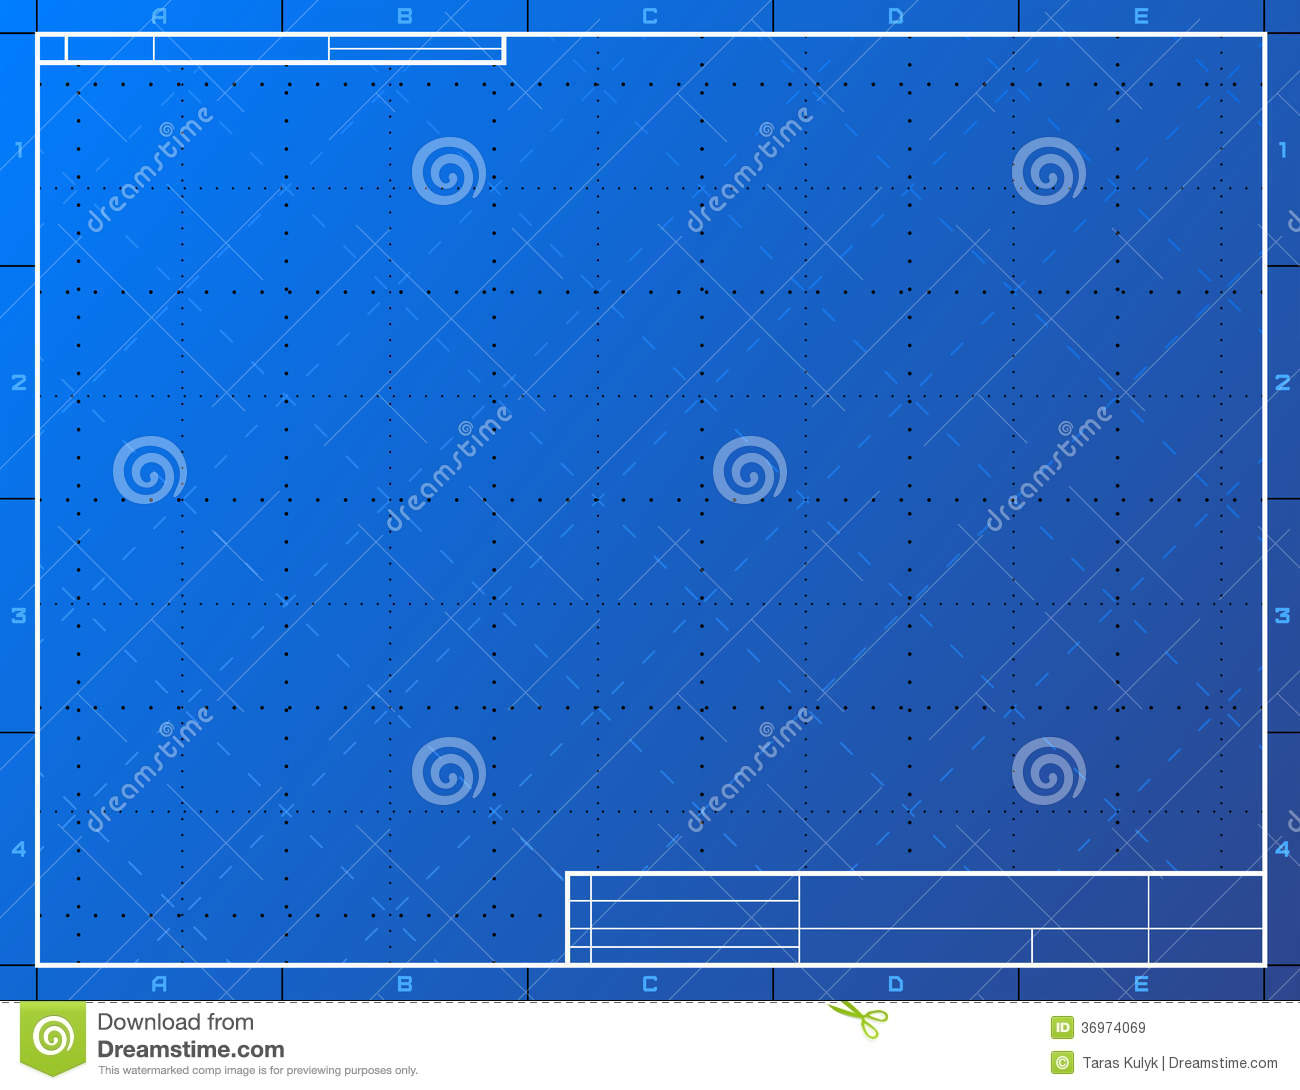 Blank blueprint paper for drafting stock vector illustration of blank blueprint paper for drafting malvernweather Gallery